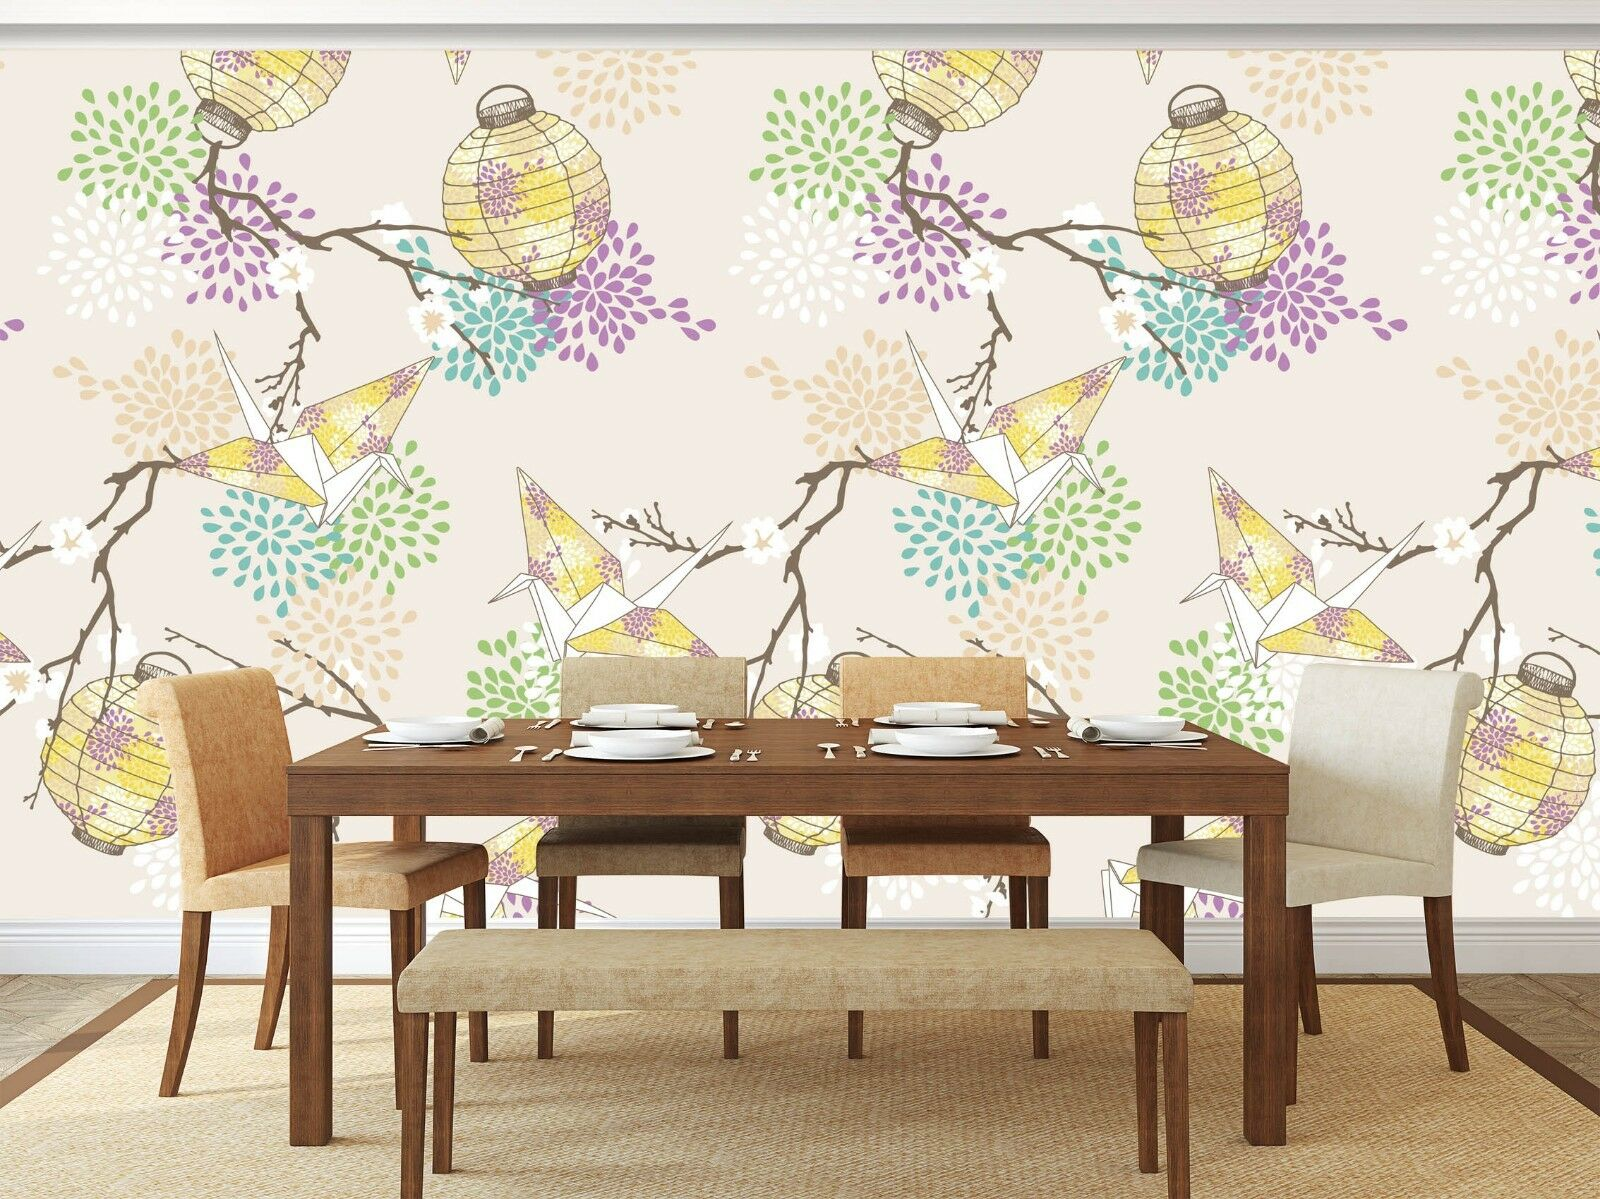 3D Bird Flower 809 Wall Paper Print Wall Decal Deco Indoor Wall Murals US Summer